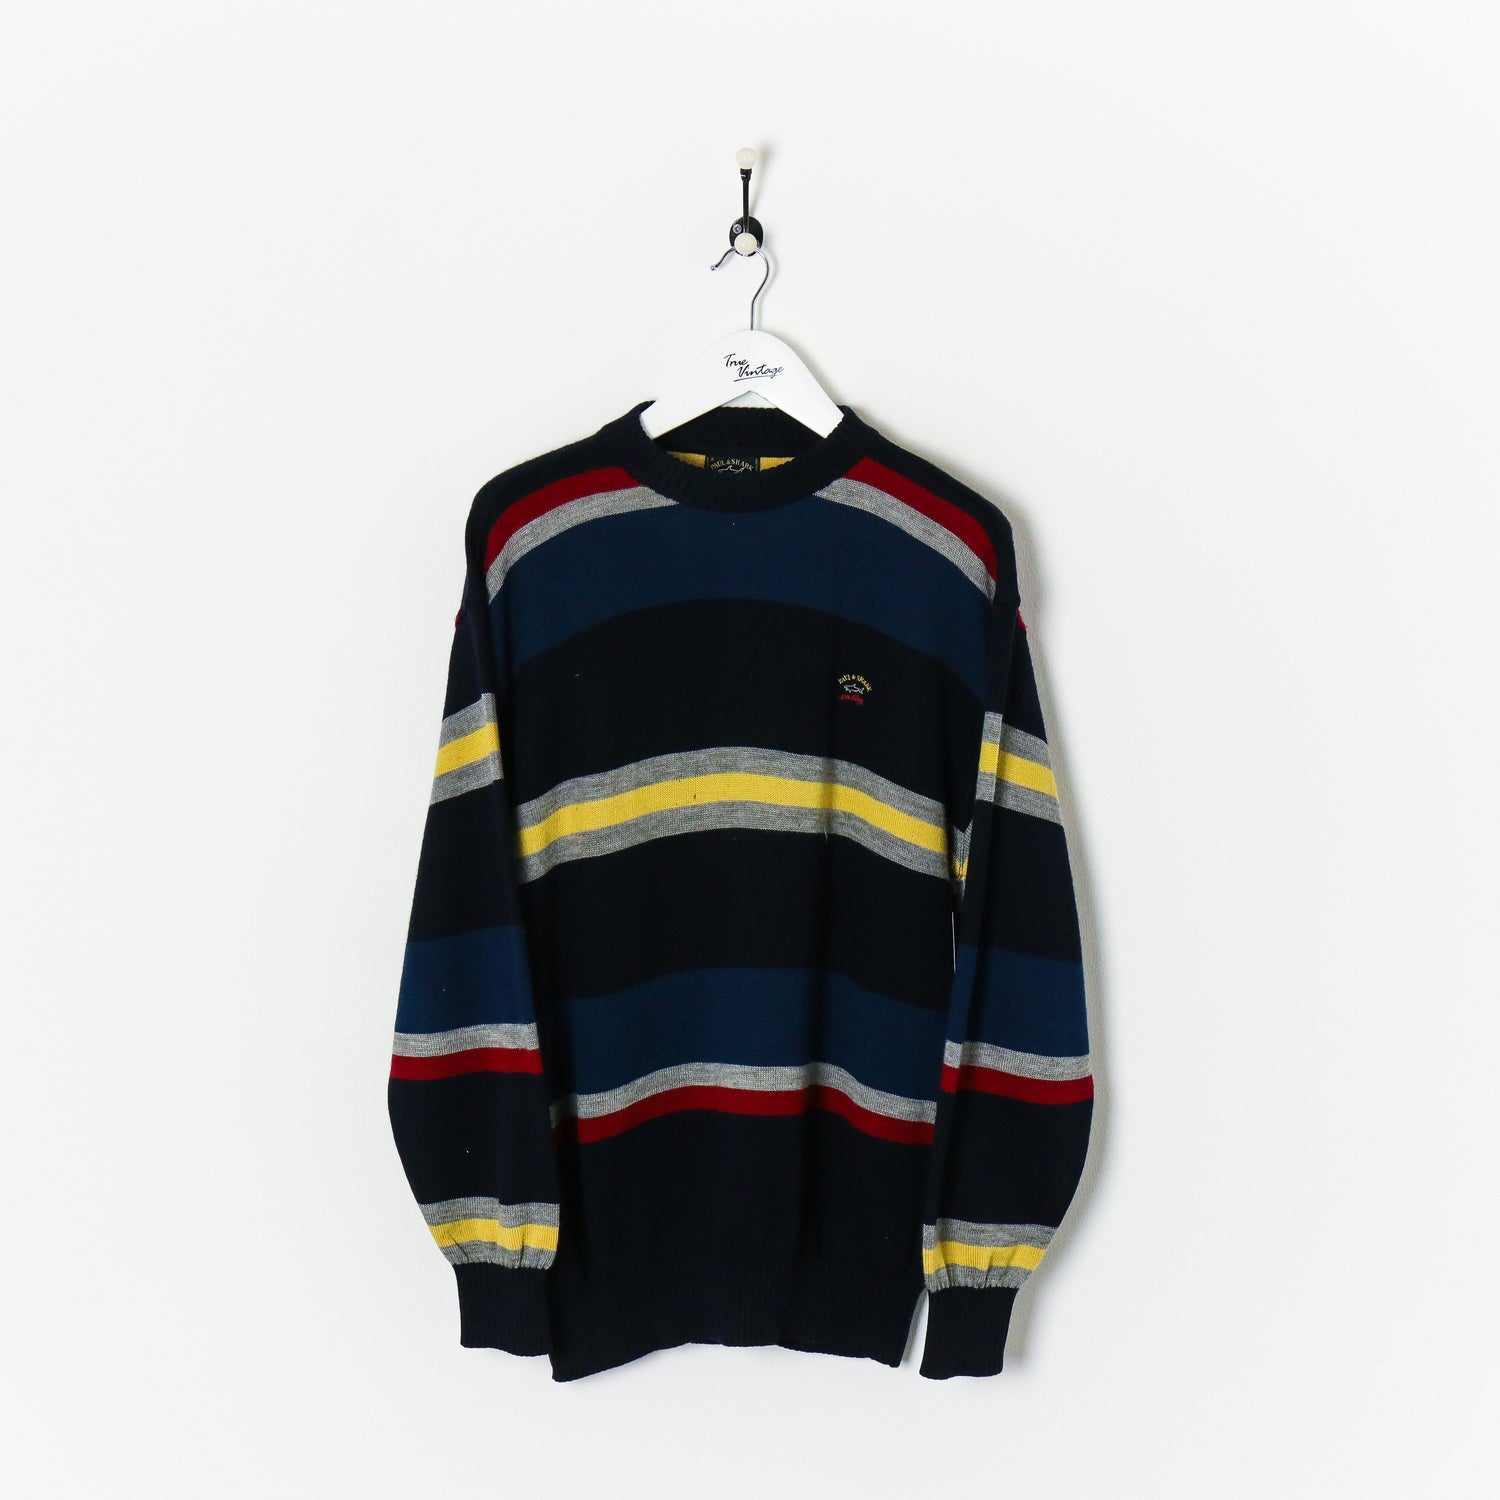 Levi's Sweatshirt Black Large